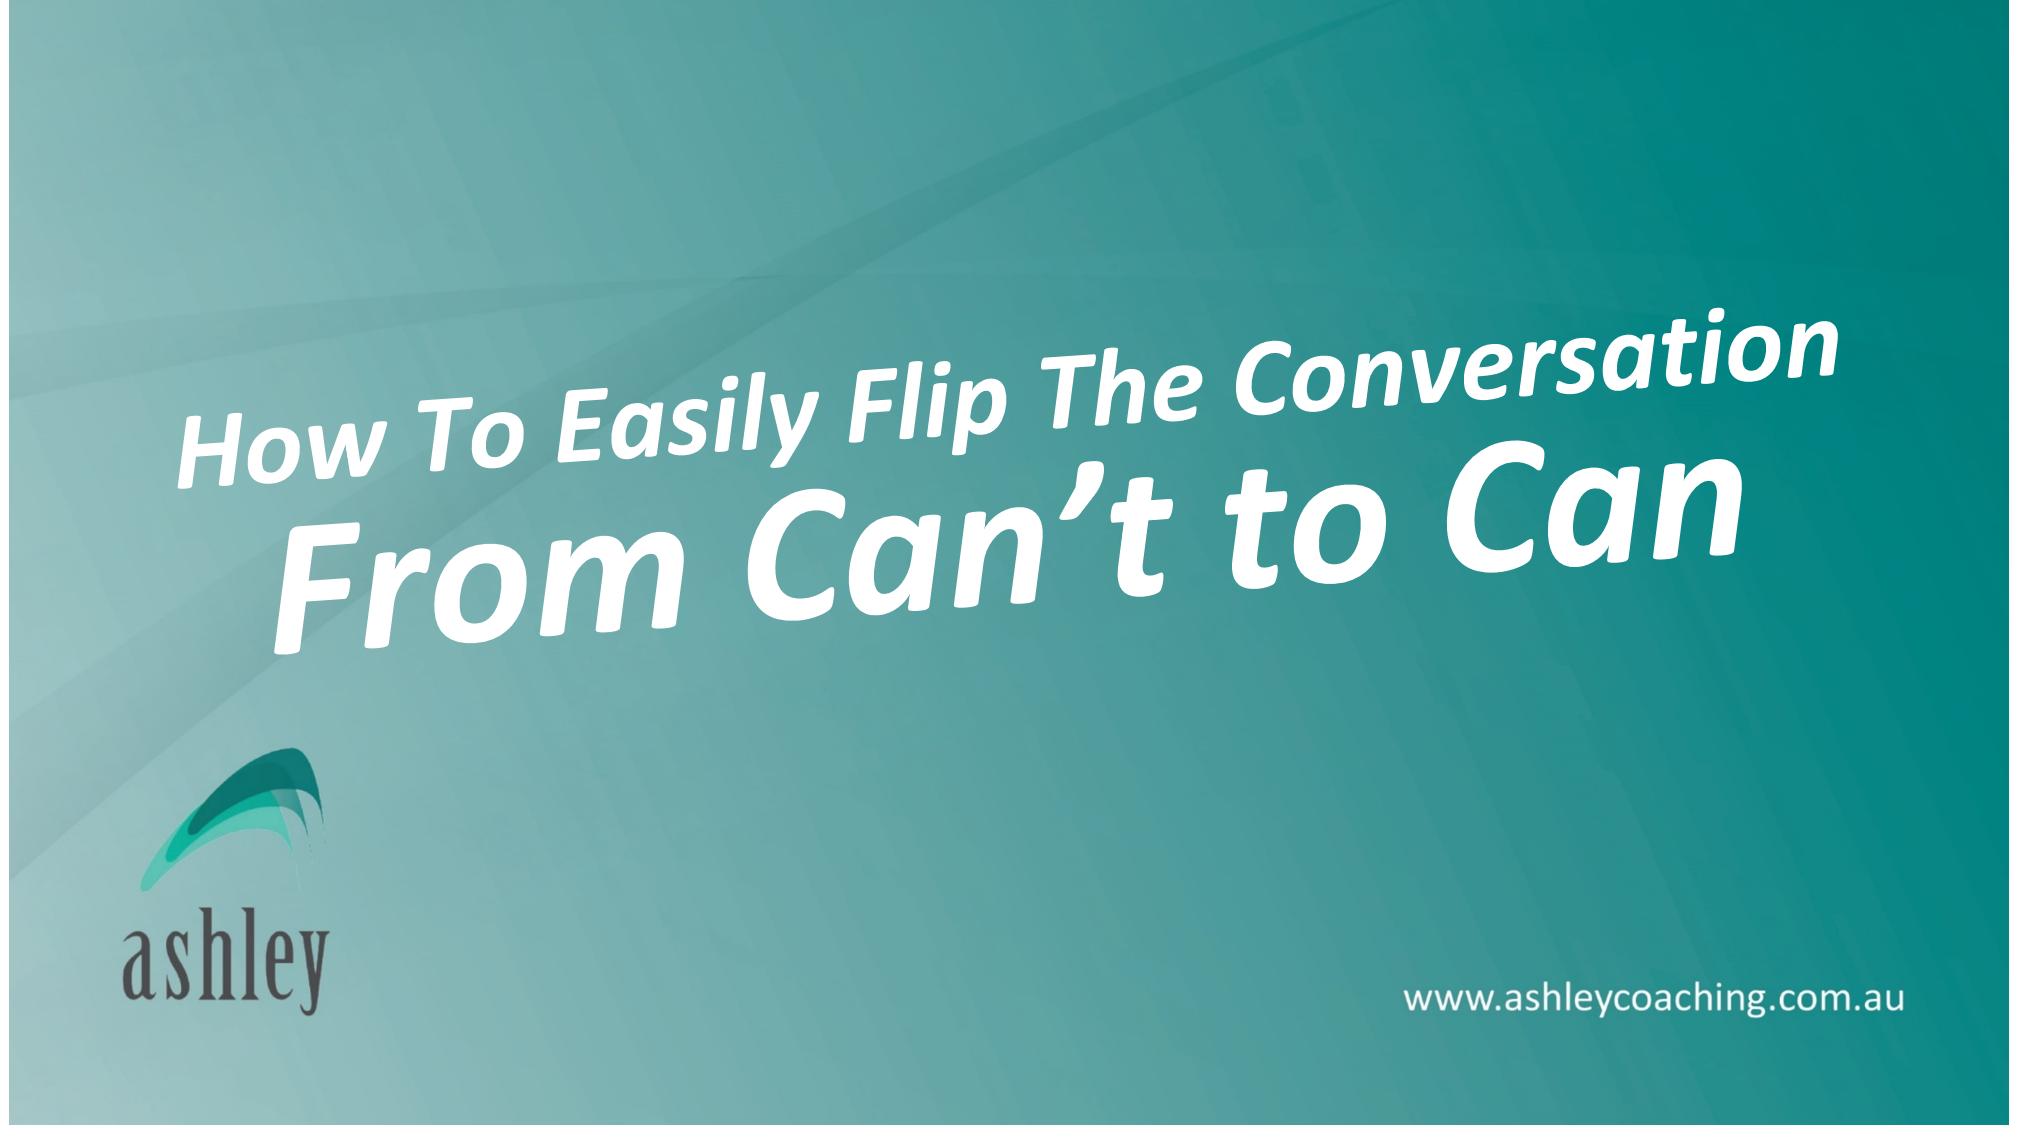 How to Easily Flip the Conversation From Can't to Can